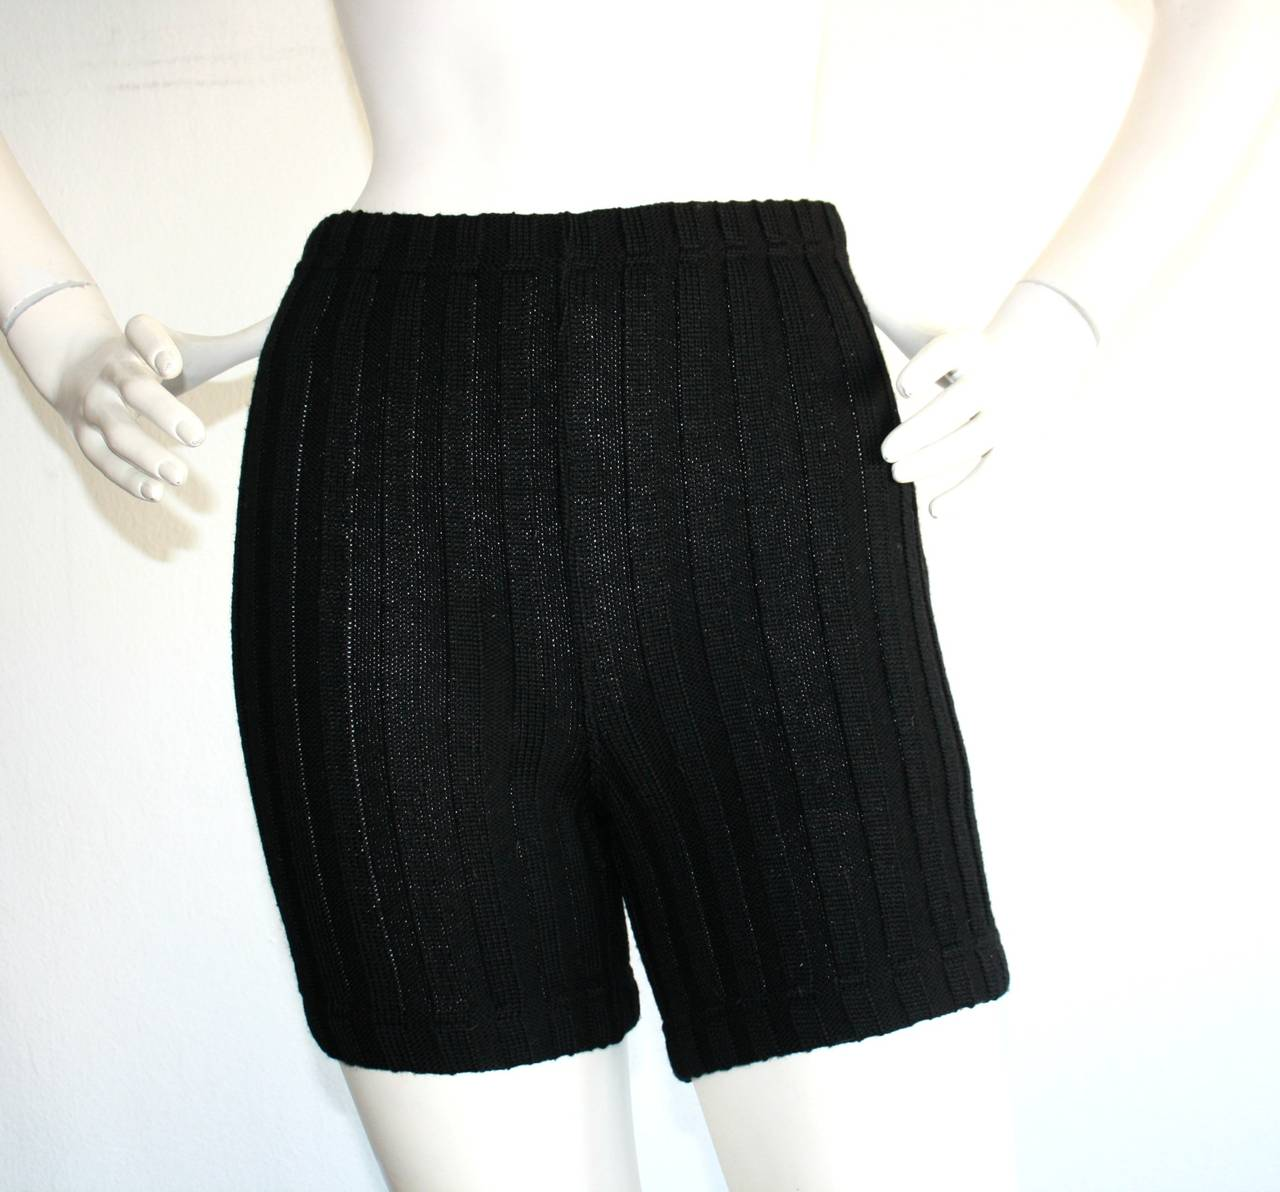 I Want Some Wool Shorts!